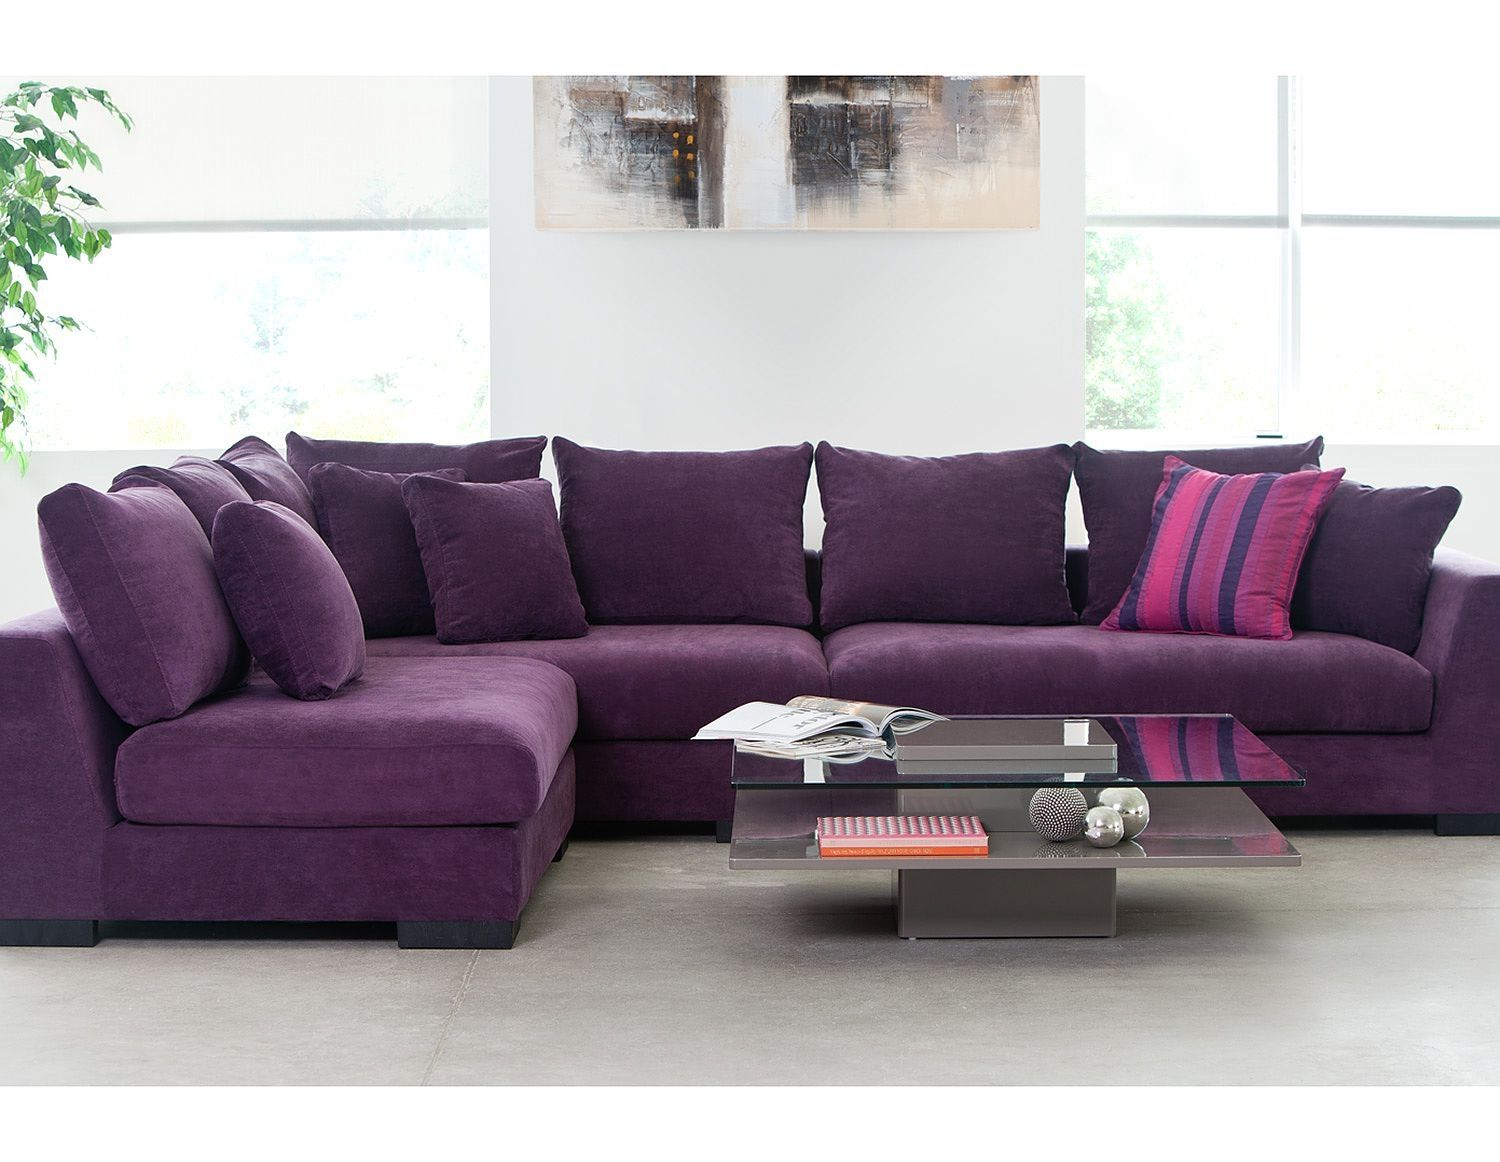 Attractive Eggplant Colored Sectional Sofa